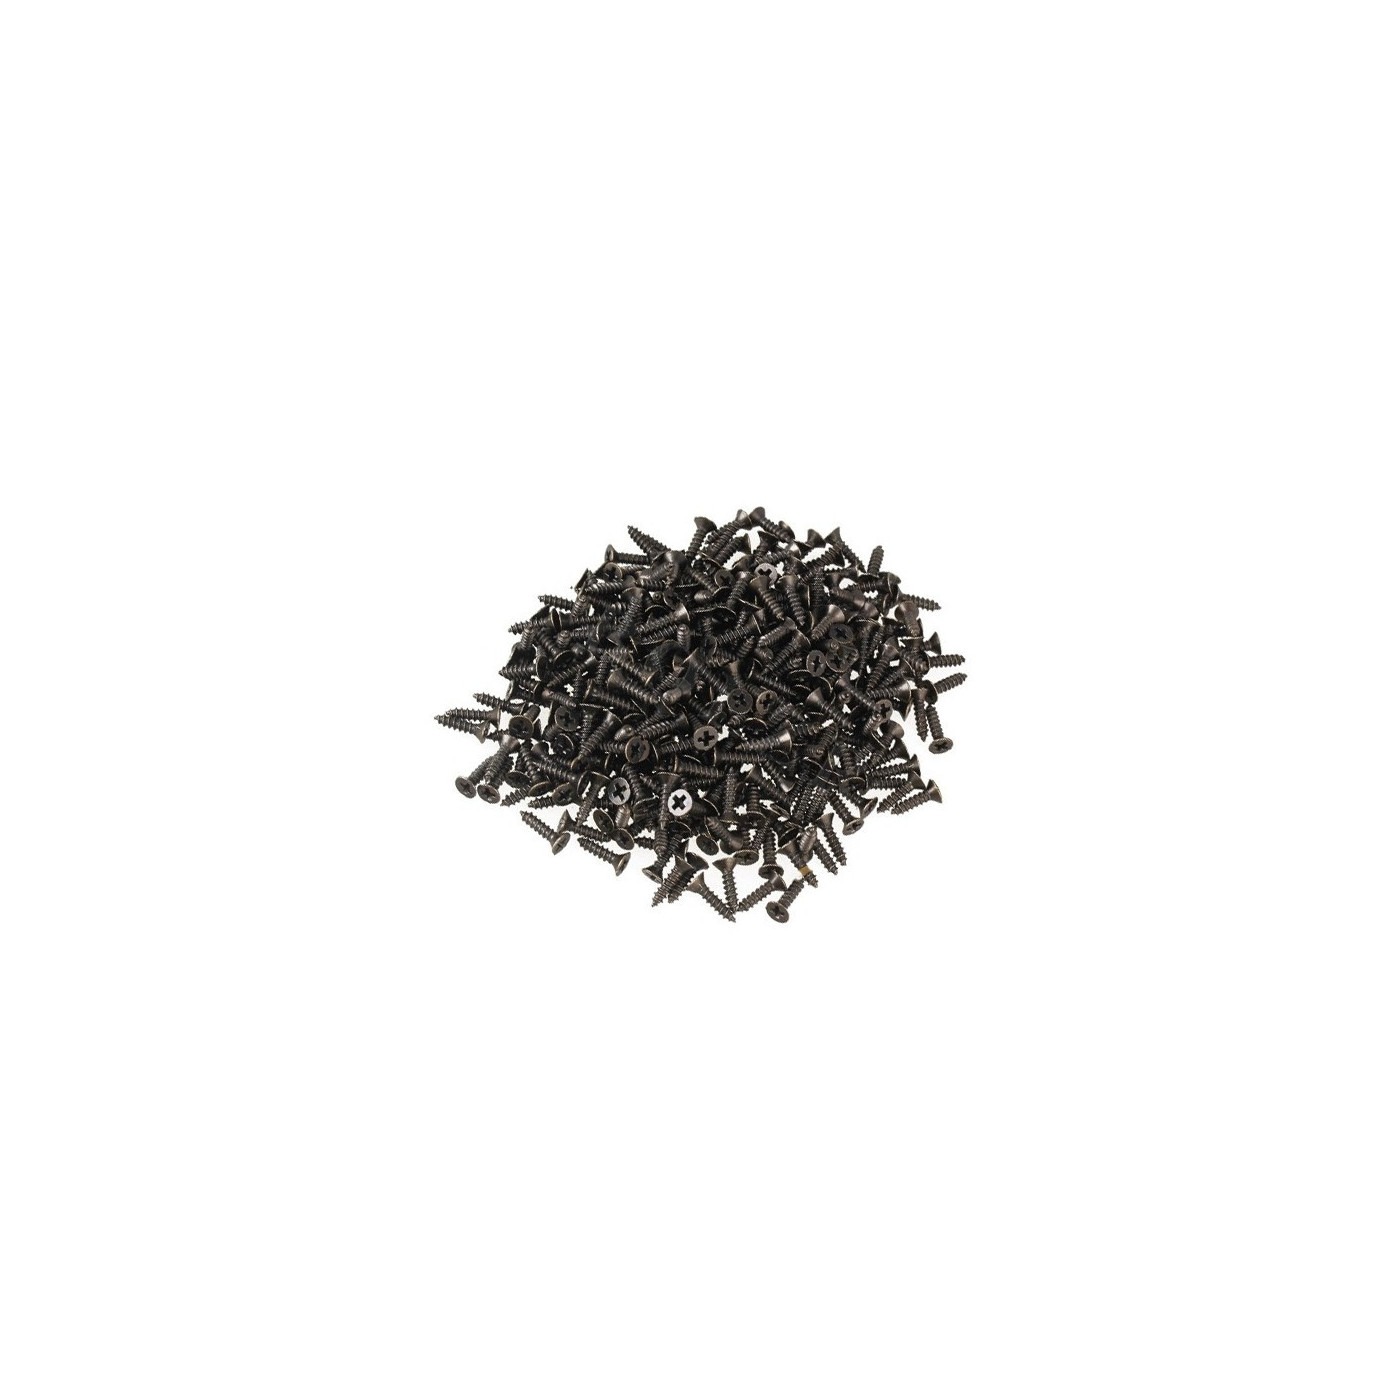 100 mini screws (2.5x8 mm, countersunk, bronze color)